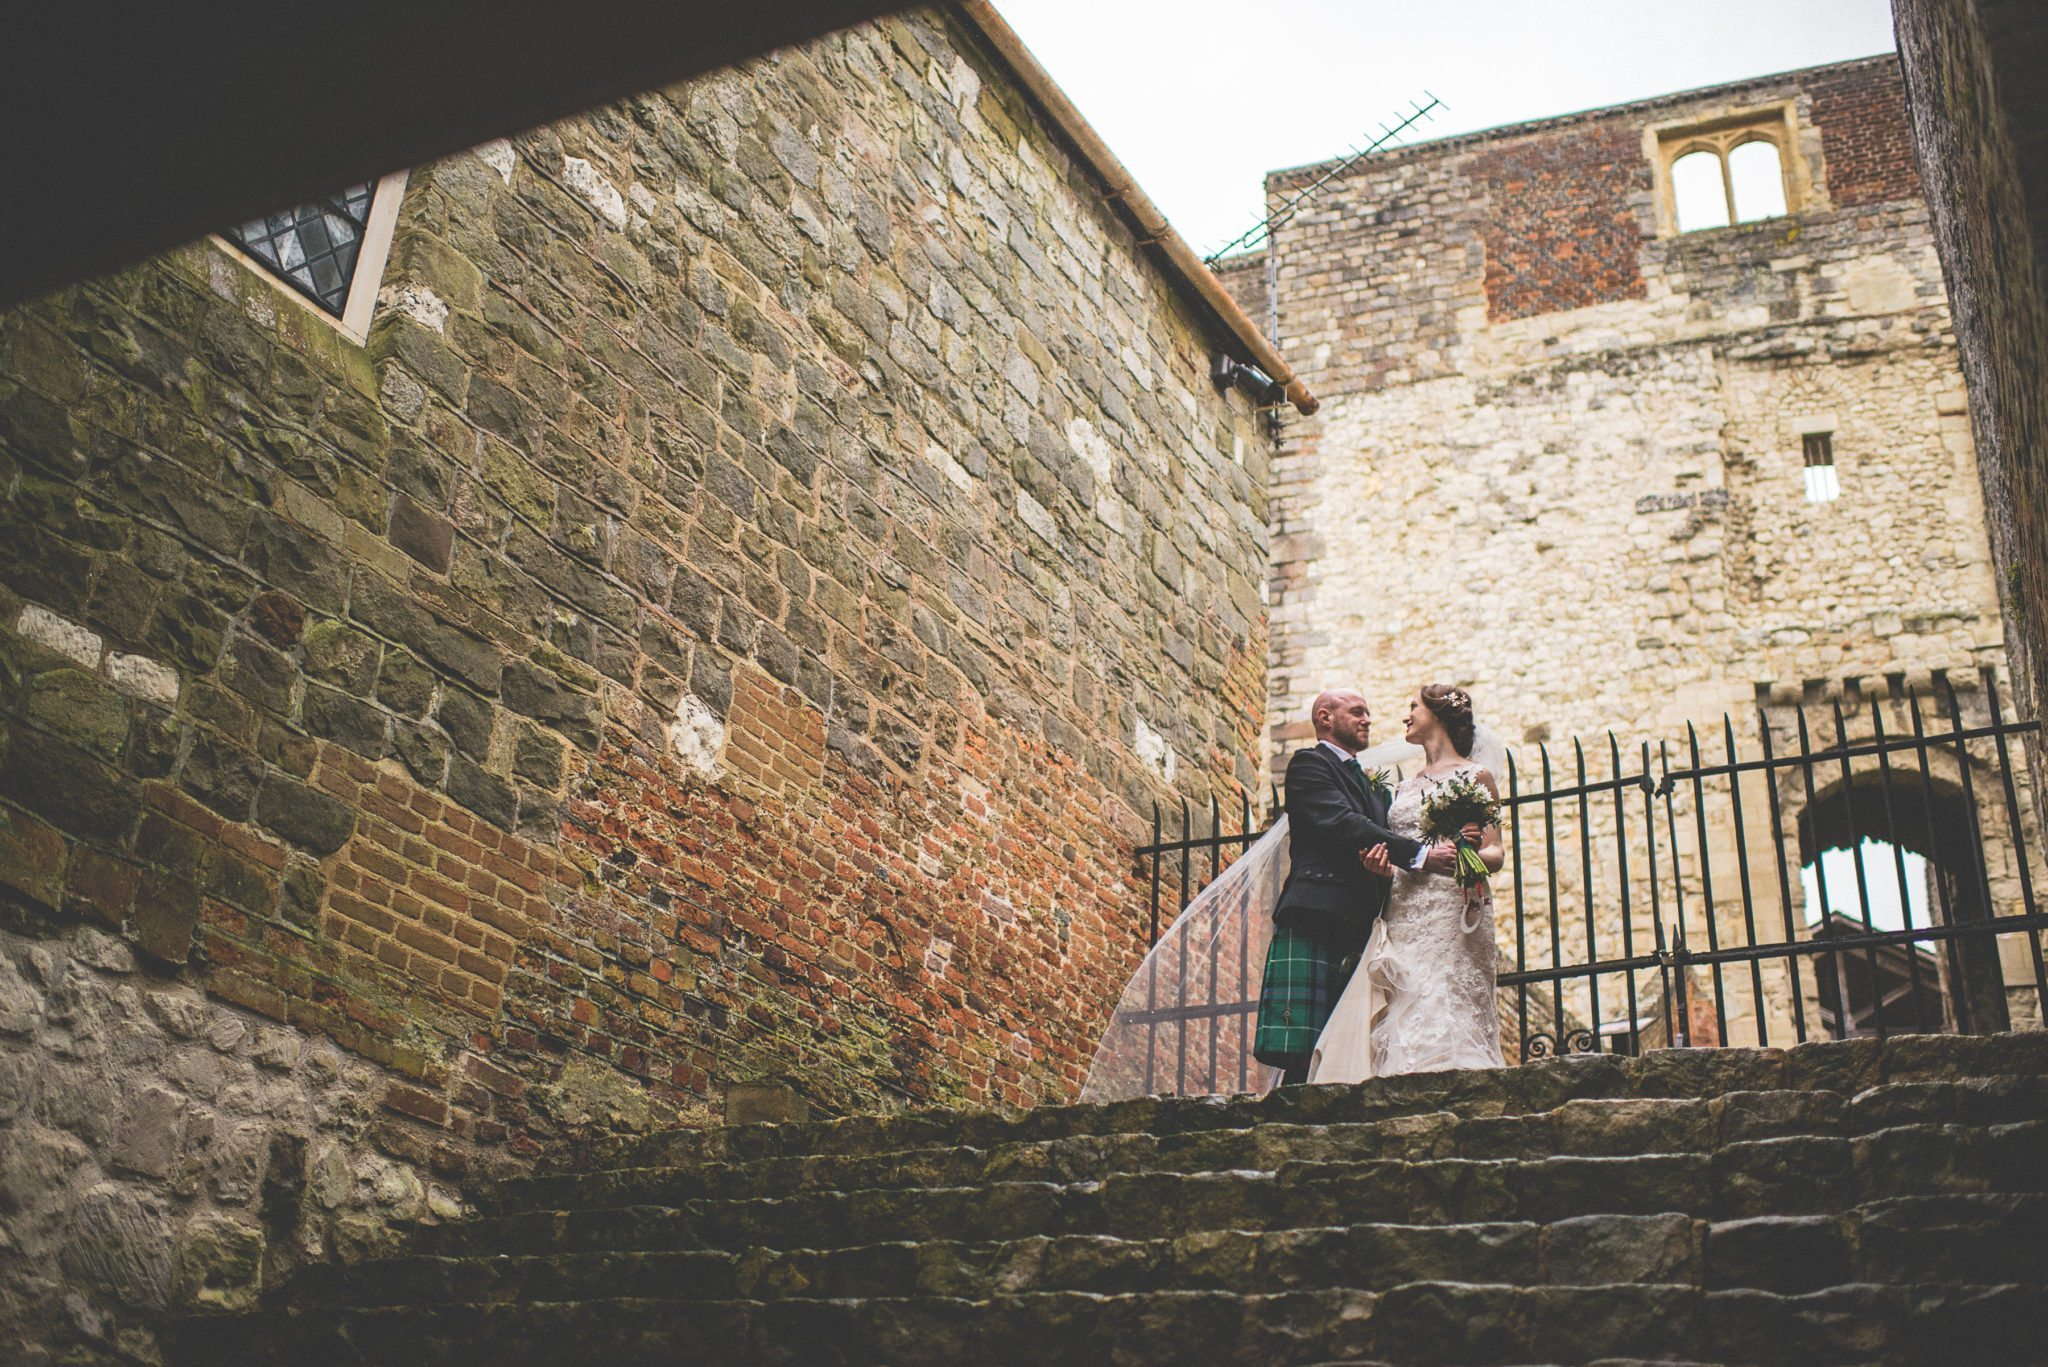 Bride and Groom standing on the ancient stairs at the Farnham Castle Keep